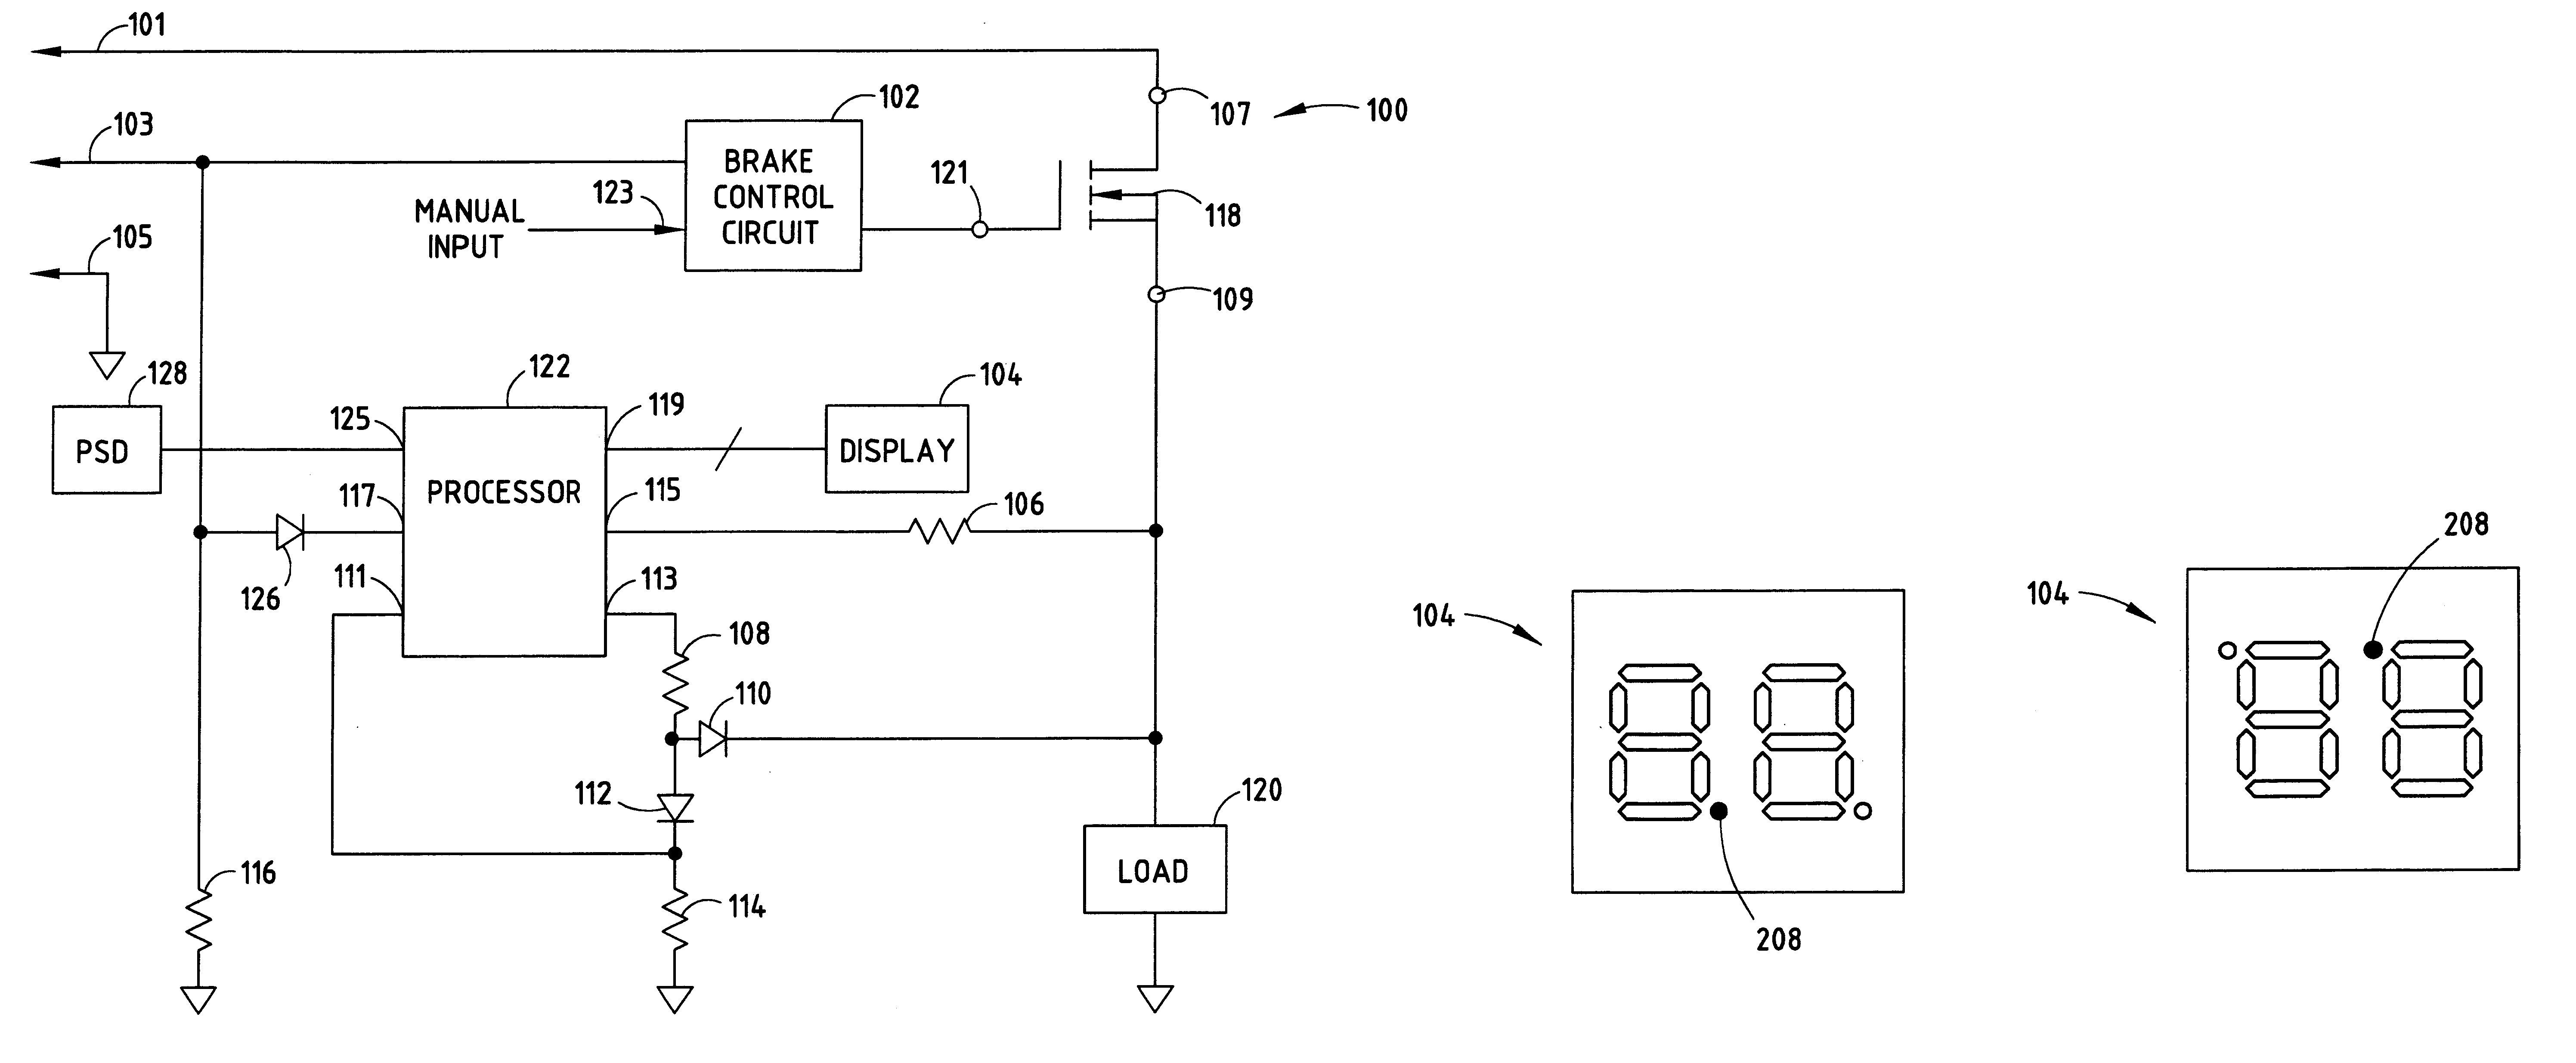 Wiring Diagram For Electric Trailer Brakes Fresh Trailer Wiring Diagram With Electric Brakes Elegant Electric Trailer